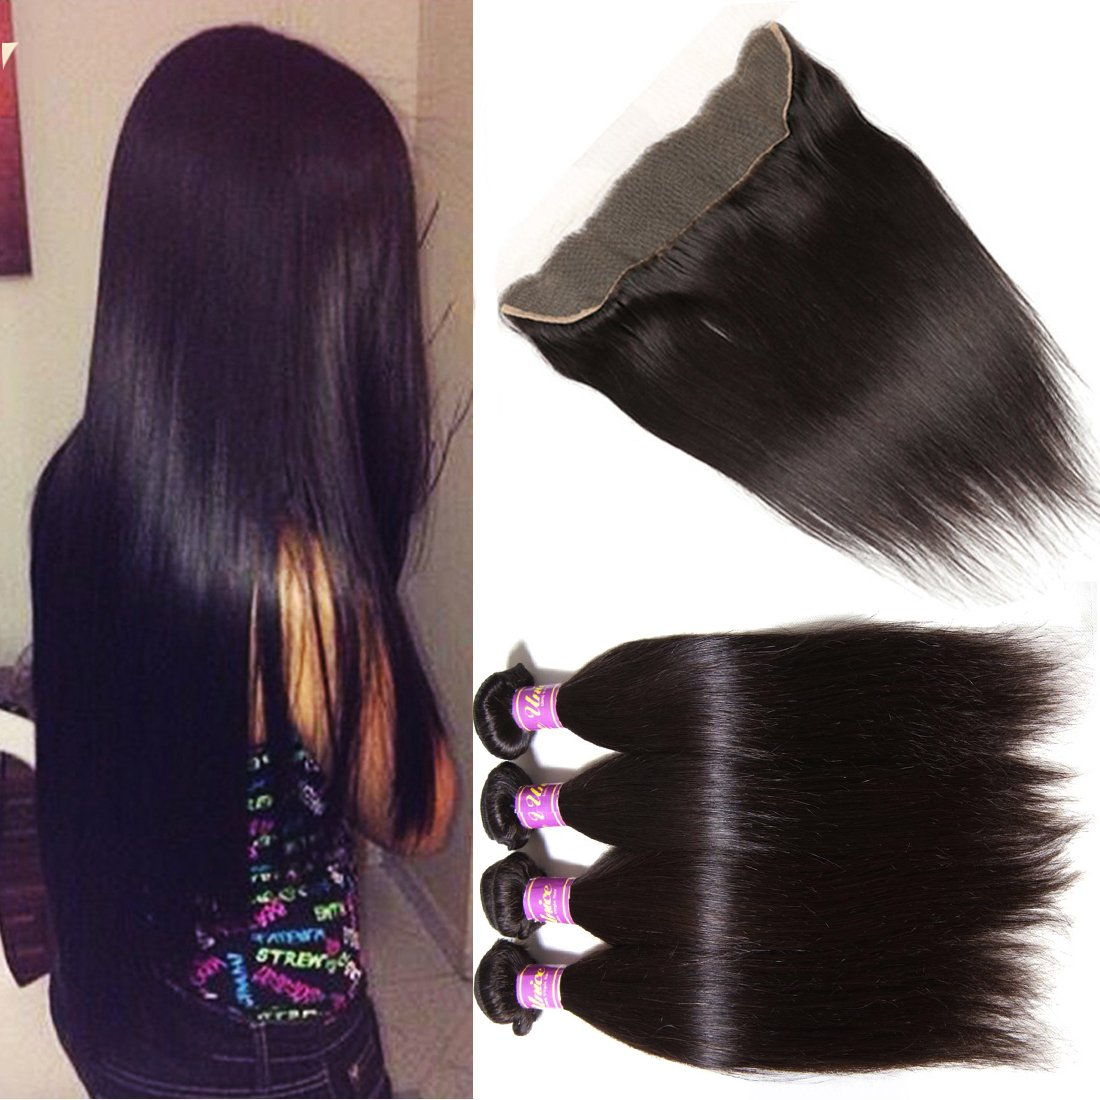 Unice Hair Malaysian Straight Virgin Hair 3 Bundles Wefts with 13X4 Ear to Ear Lace Frontal Closure Human Hair Extensions Natural Color (14 16 18+12Frontal)